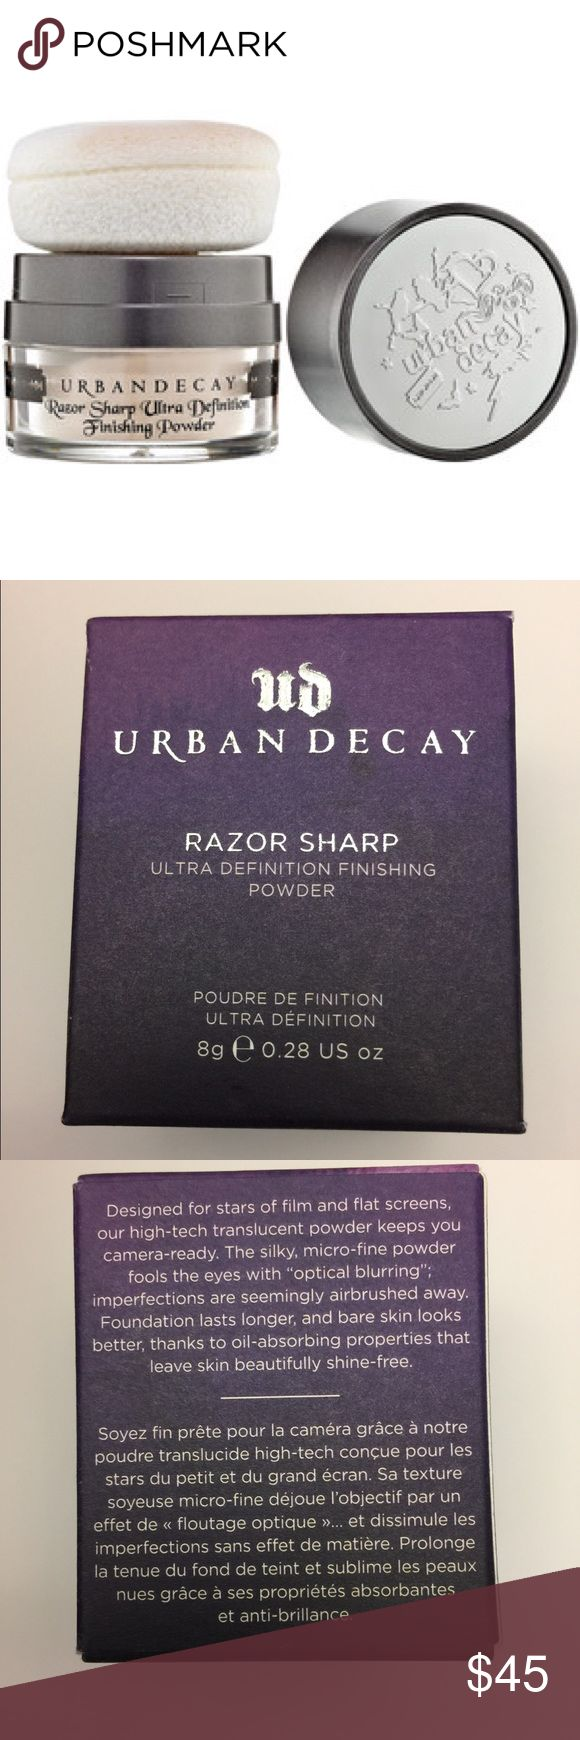 Urban decay razor sharp ultra definition powder Discontinued. Urban decay razor sharp ultra definition finishing powder 8g/0.28oz. NIP never opened or tested. The concept of this loose powder is to provide a stunning, soft-focus effect, even under bright and unforgiving light. It does that and more thanks to its super-fine texture and translucent color. This powder has an unusually slippery texture, but it adheres well to skin and leaves a soft, non-powdery matte finish that feels weightless…